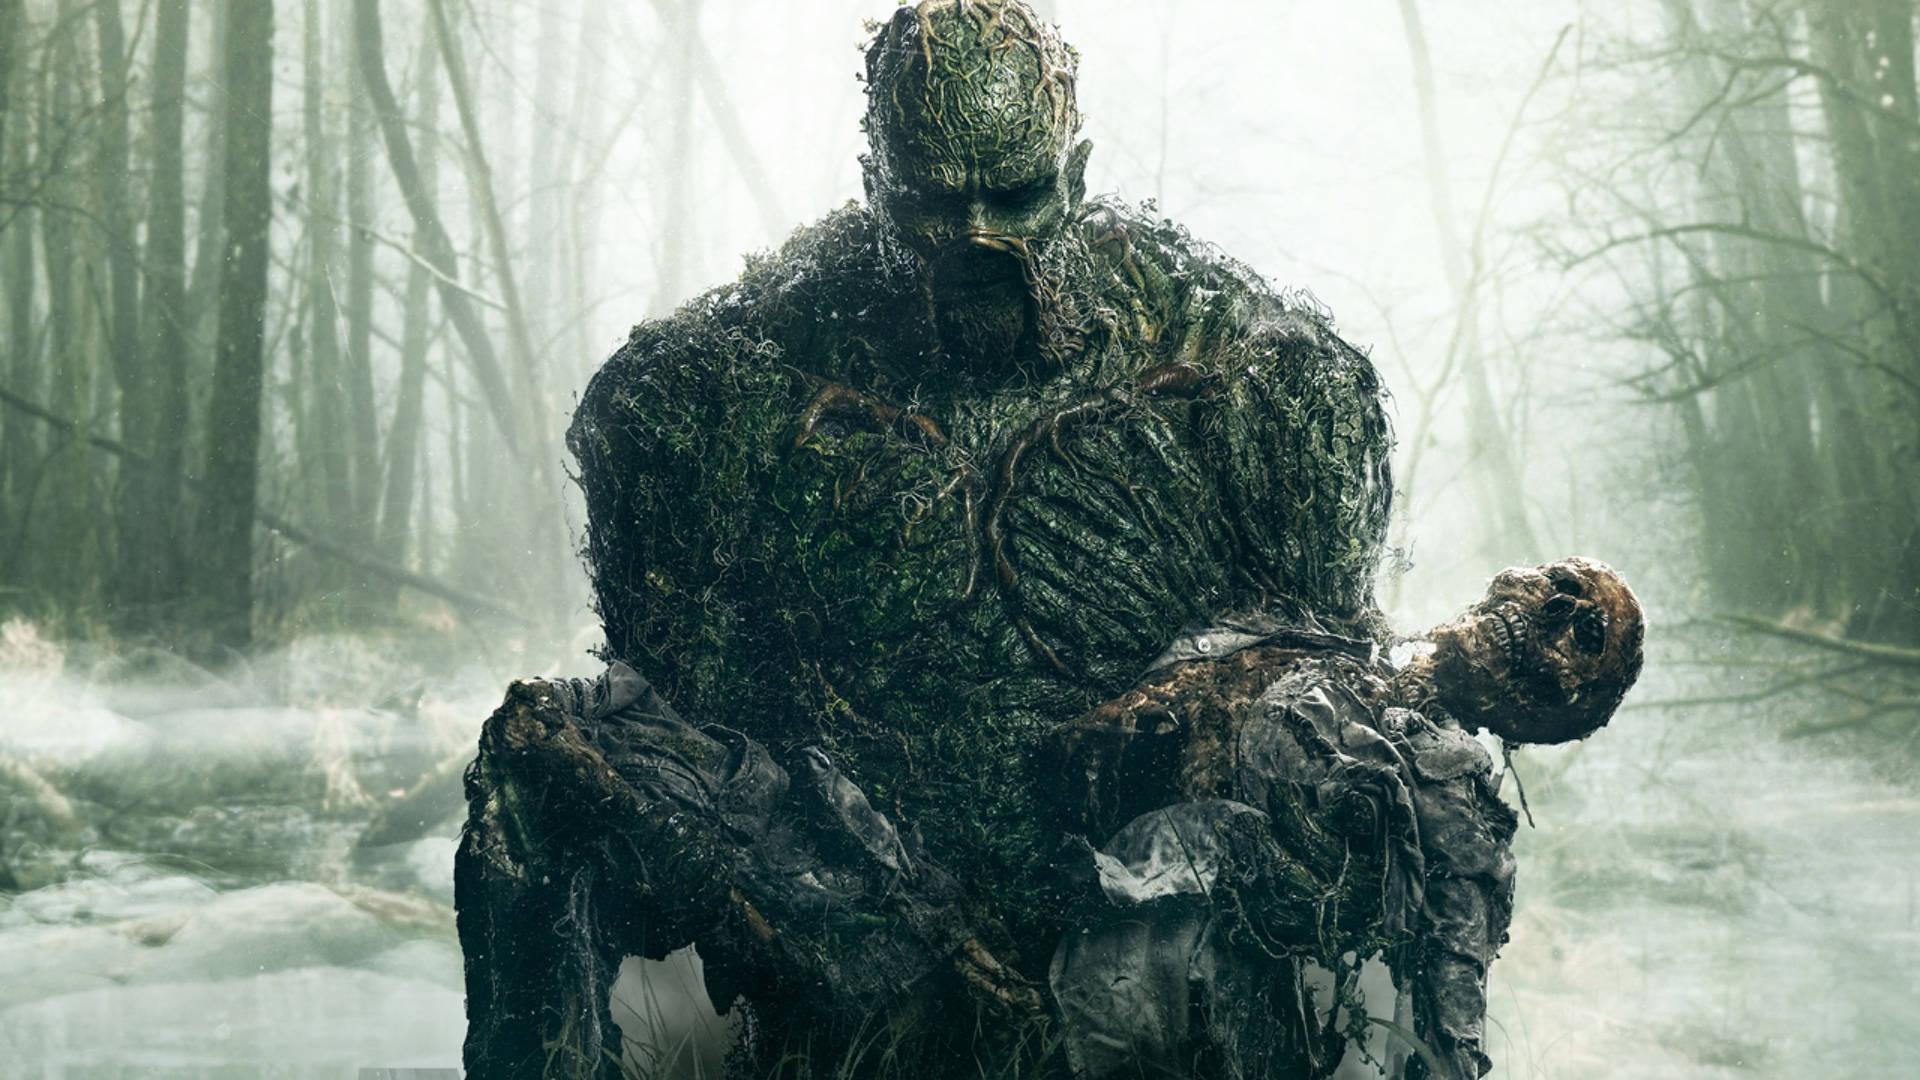 new-trailer-for-dcs-swamp-thing-highlights-the-chilling-horrors-of-the-story-social.jpg